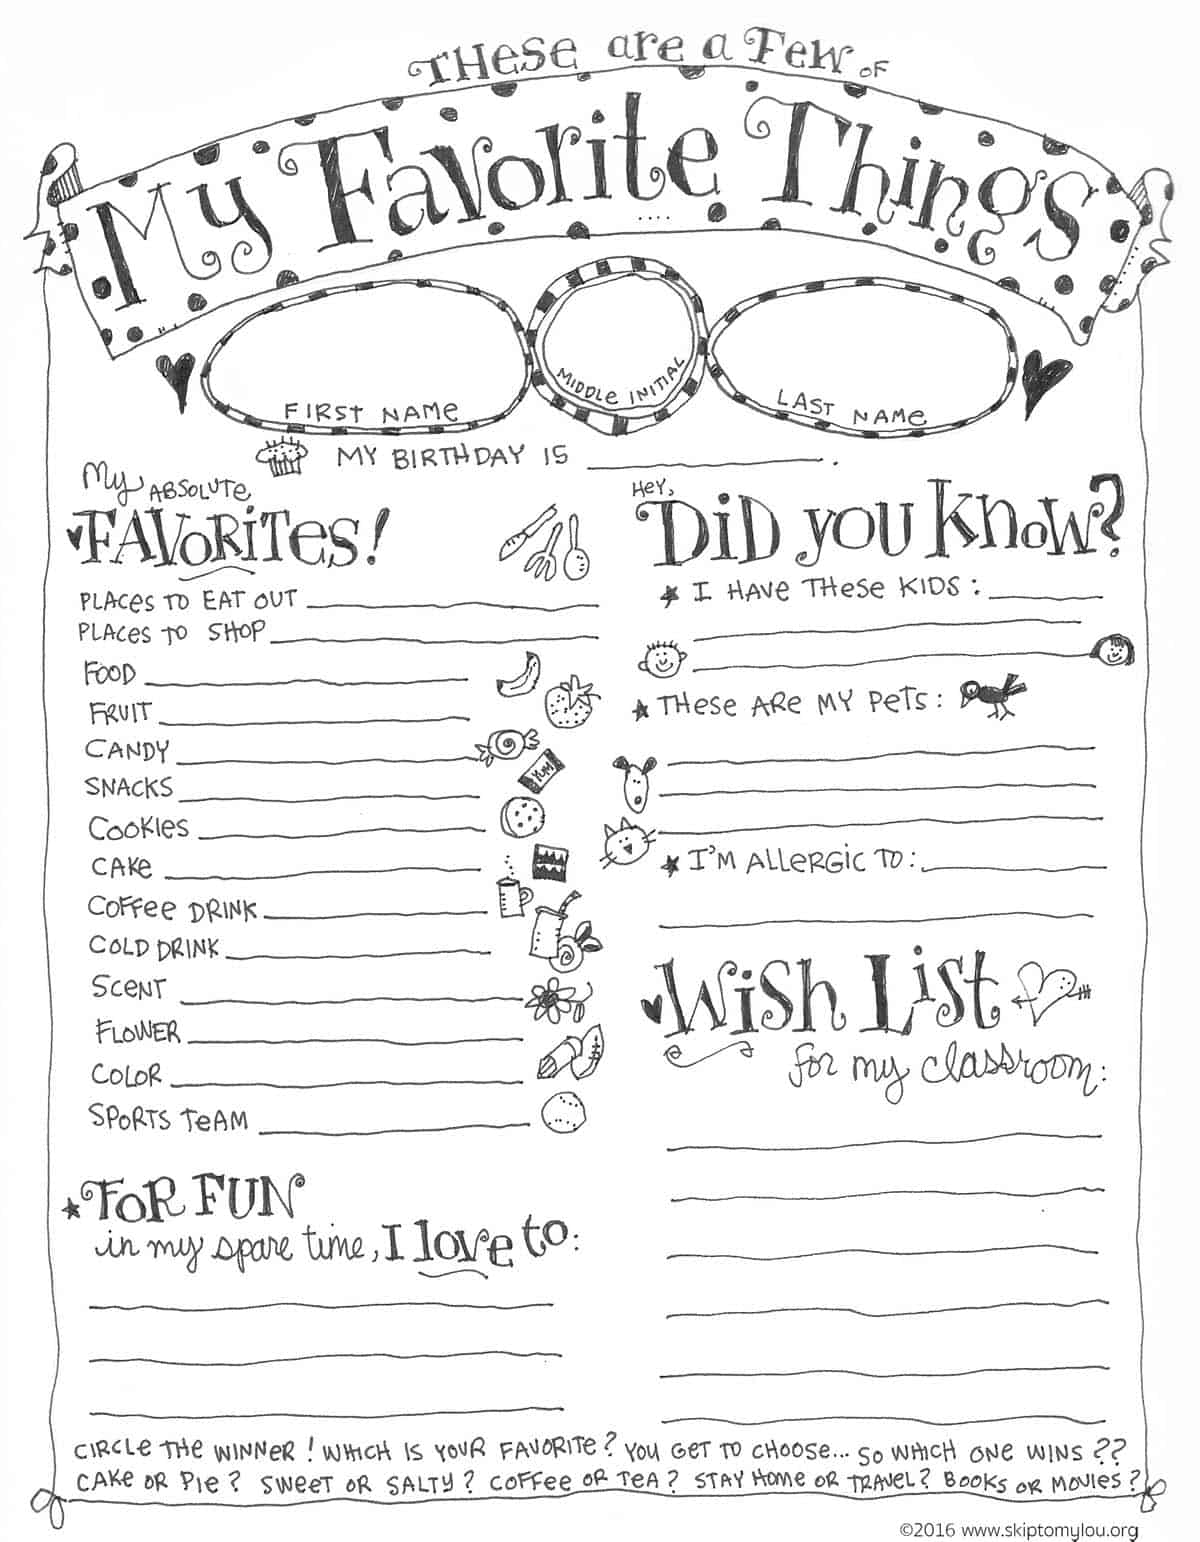 Teacher Favorite Things Questionnaire Printable | Skip To My Lou